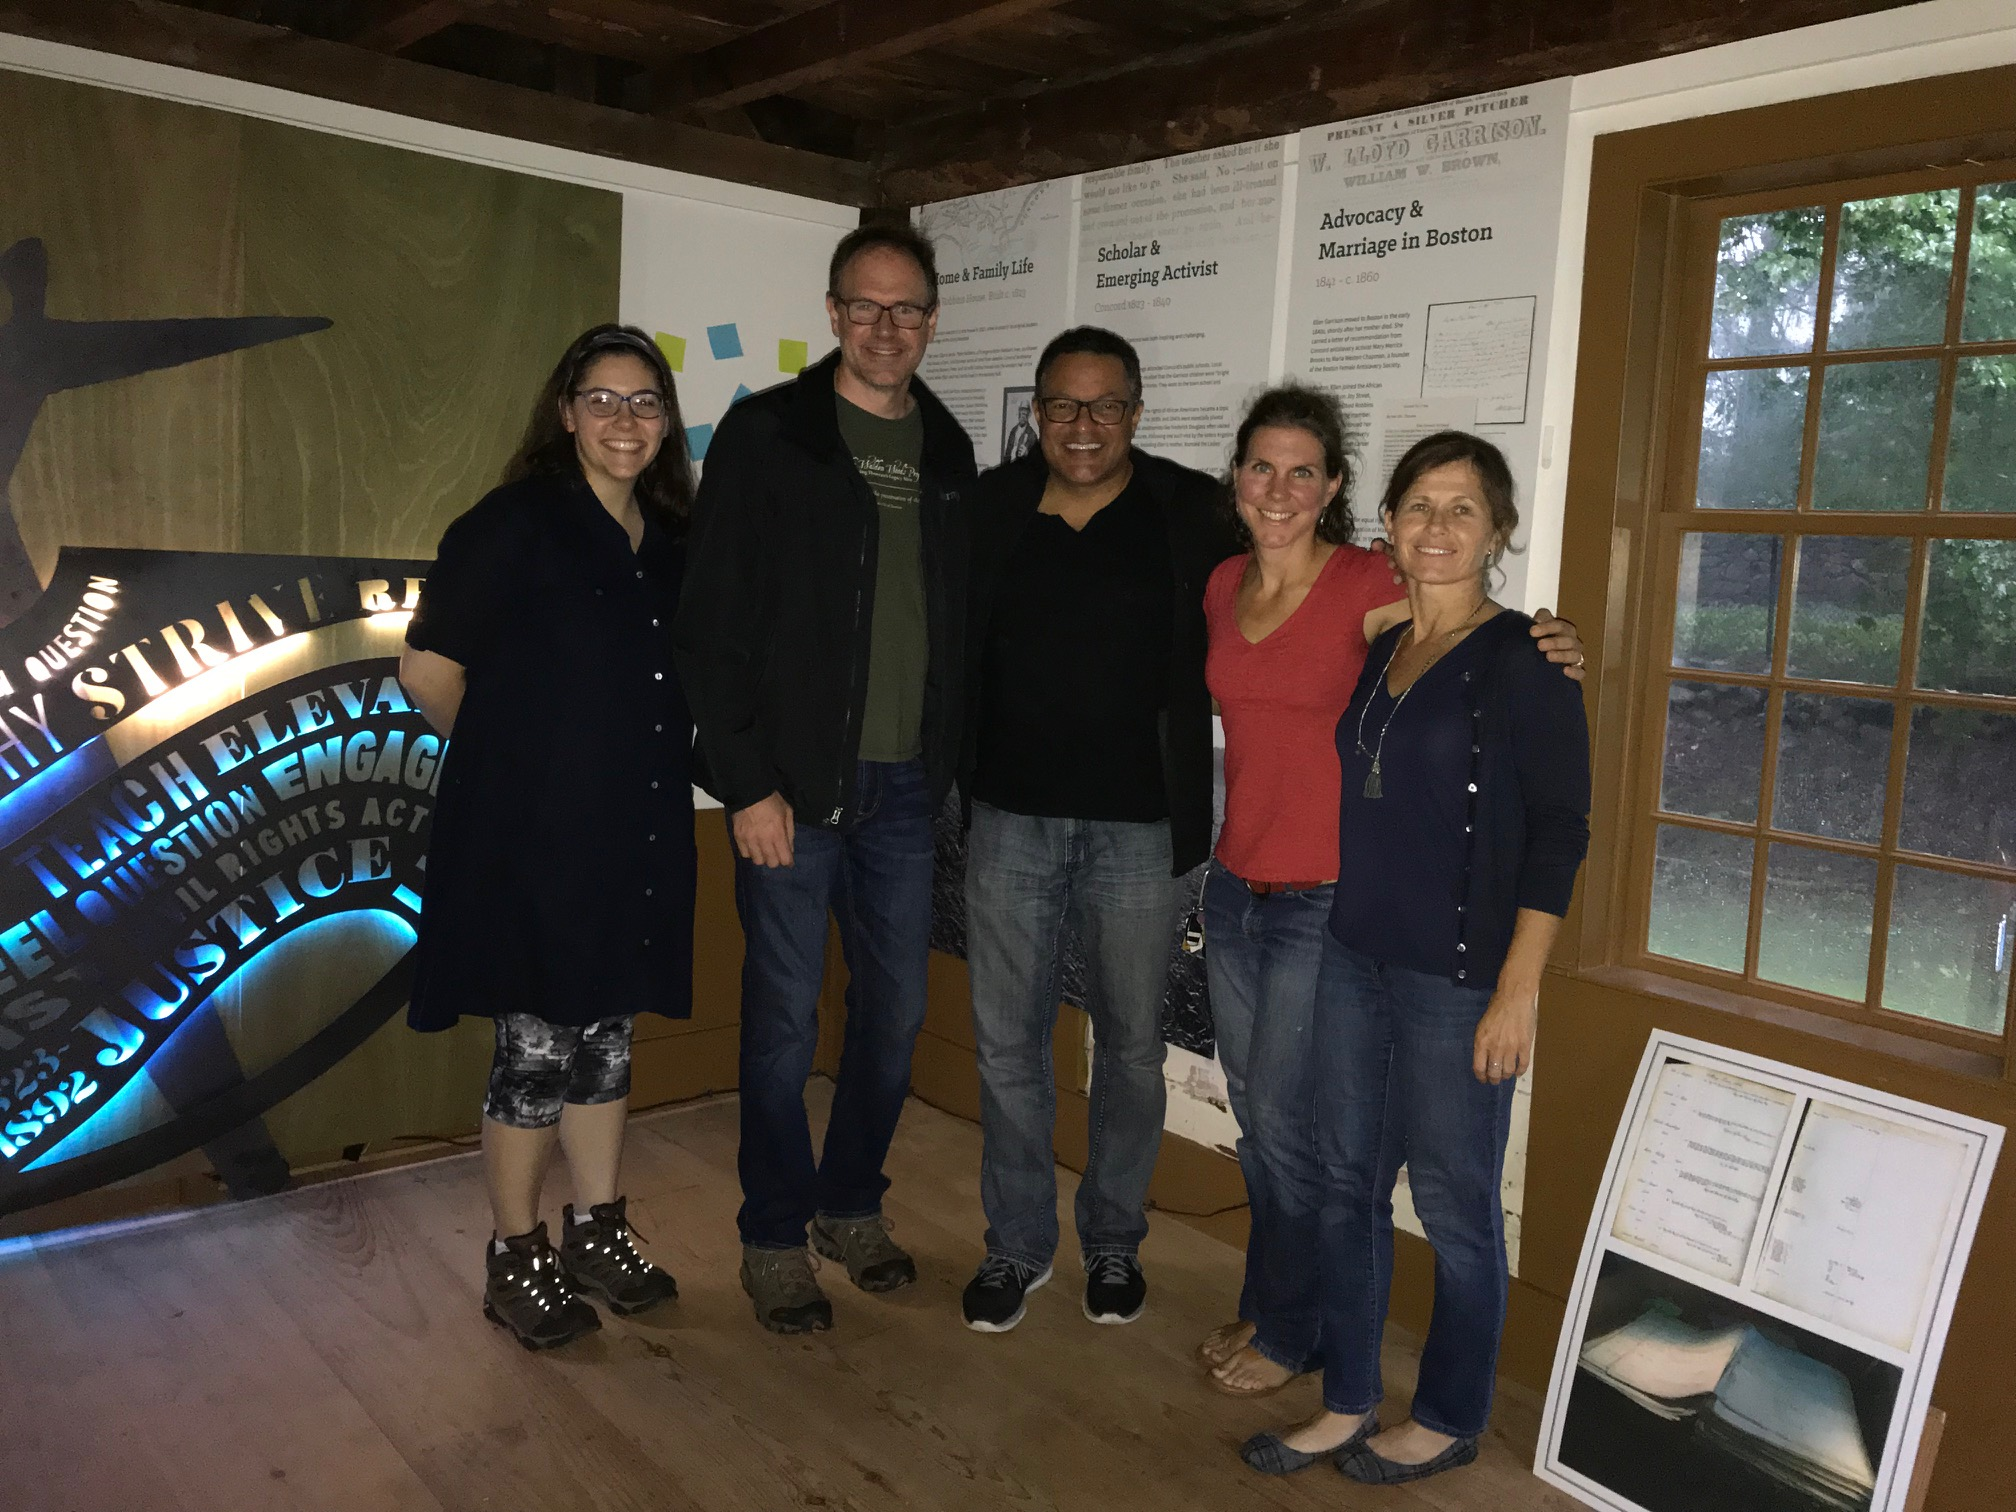 Ken Morris (3rd From Left) Visits The Robbins House With (l-r) Miriam Renz, Matt Burne, And Whitney Retallic Of The Walden Woods Project, And Concord Native Kristin Leary Of Leary Ventures And Frederick Douglass Family Initiatives.